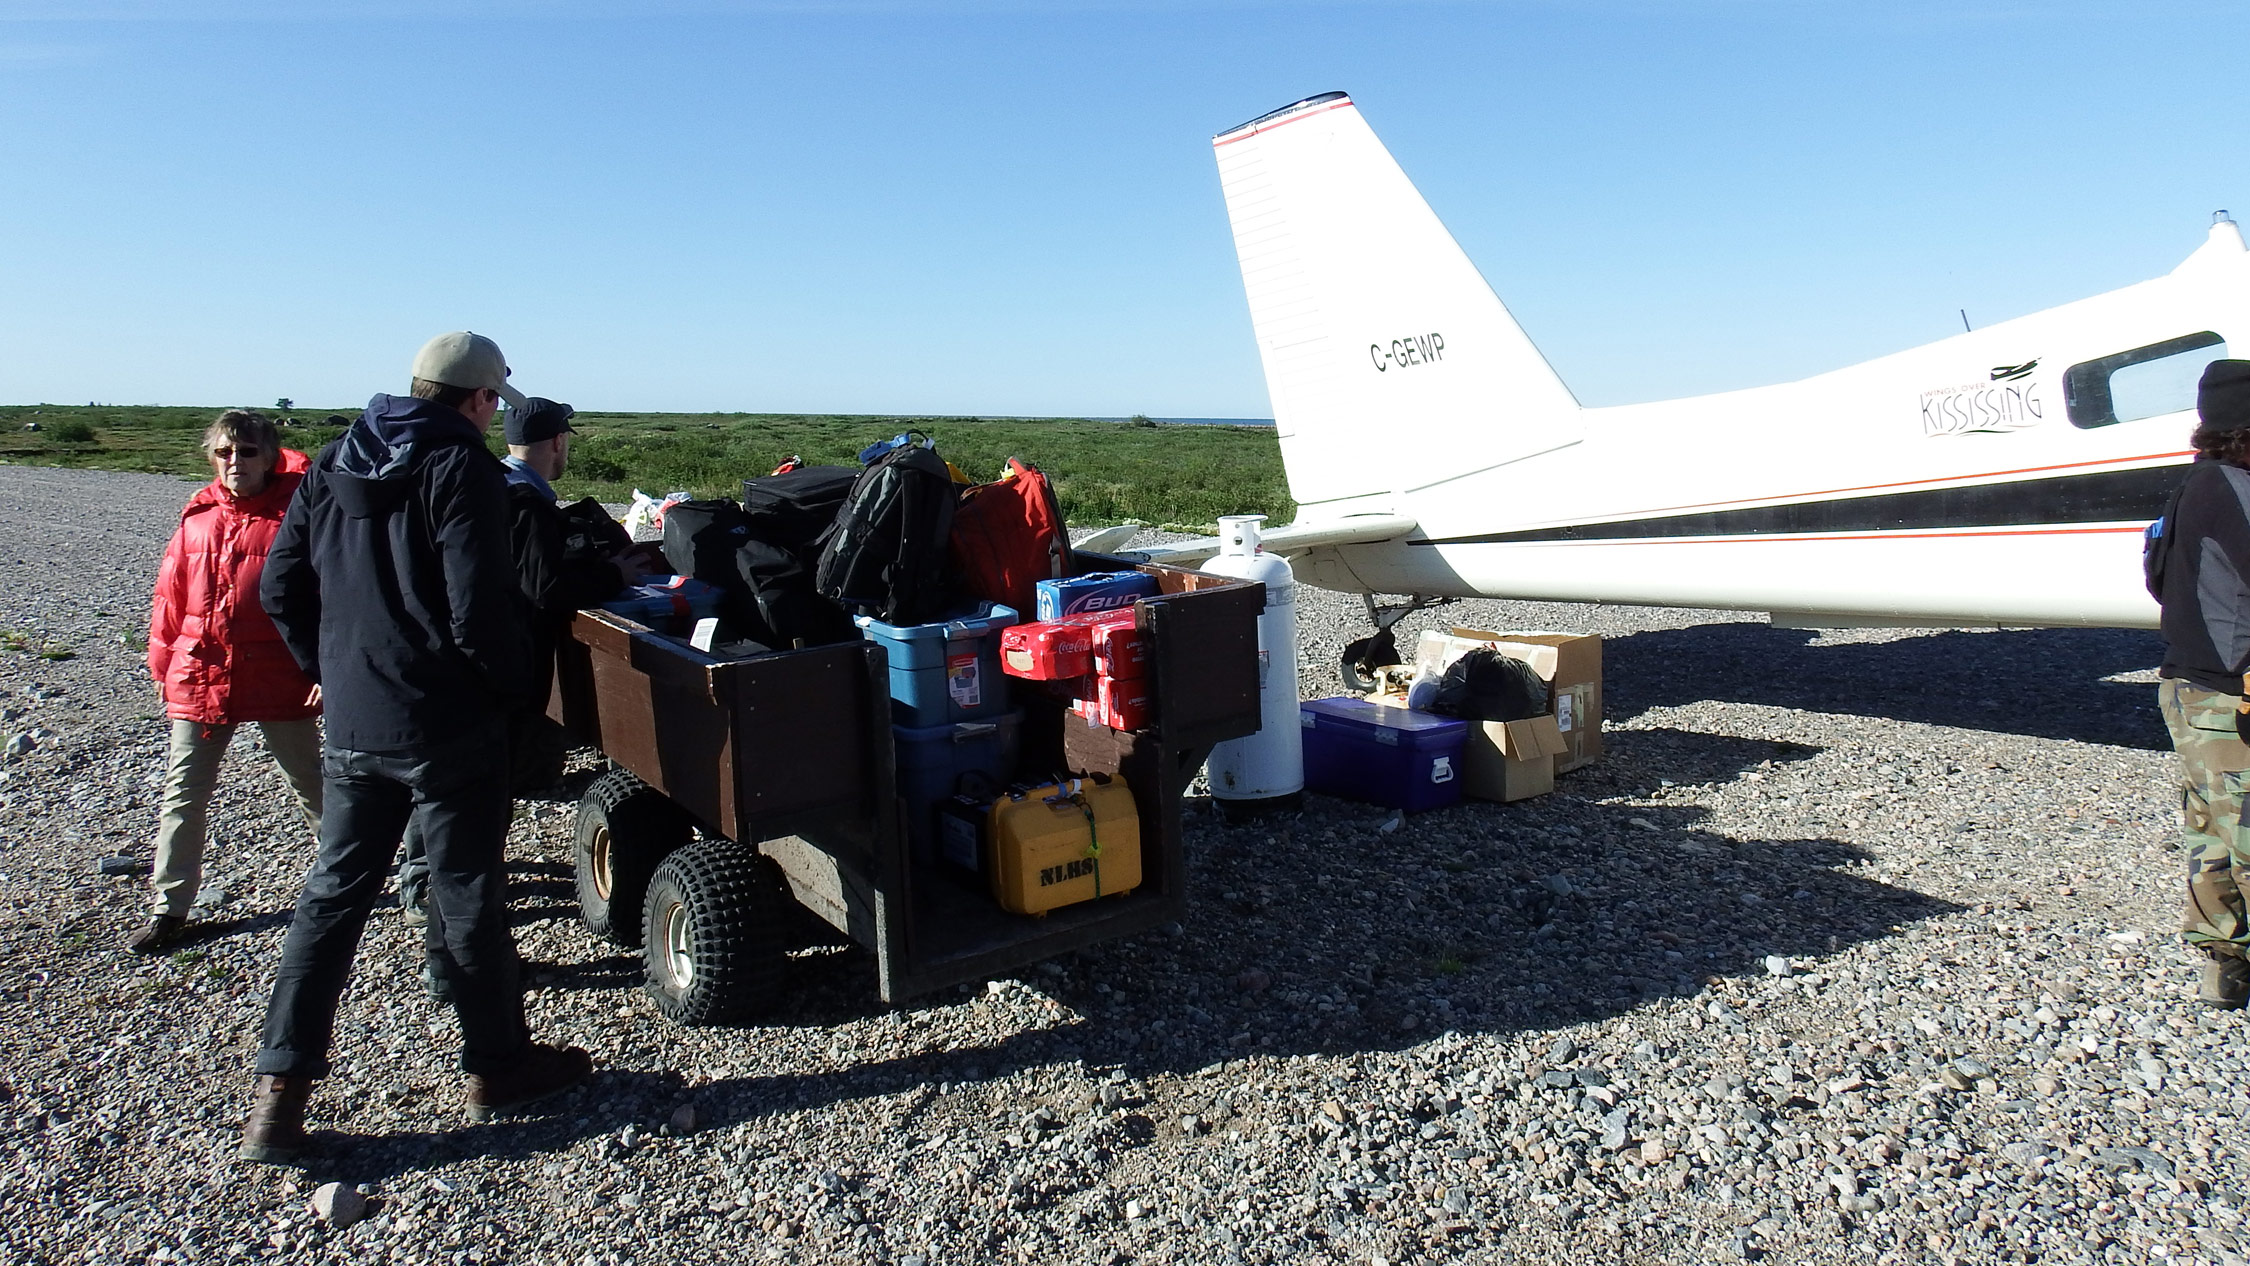 Loading up the field gear in Churchill, Manitoba